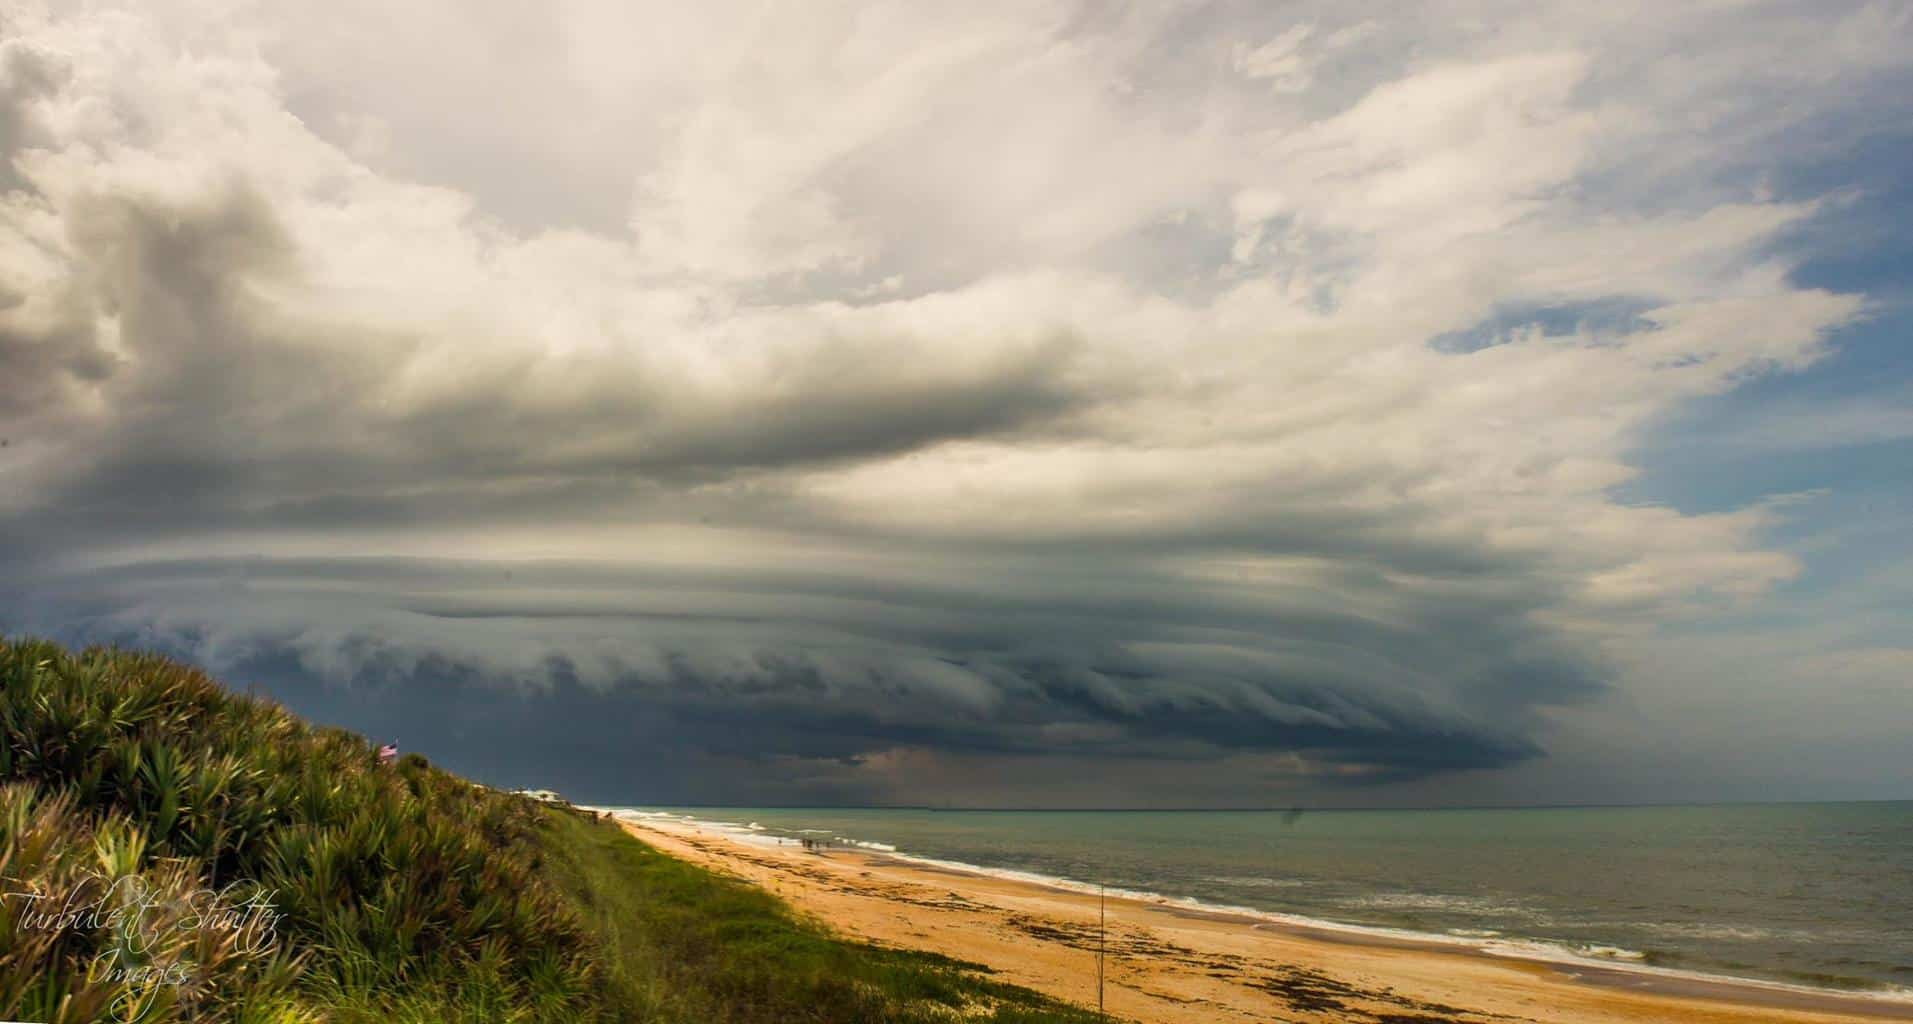 Summer Beast  Flagler Beach, FL  June 25 2015  Monster Shelf cloud moves down the beach South bringing with it very heavy rain and intense lightning during the afternoon storms Florida is known and loved for. Bring on the Spring